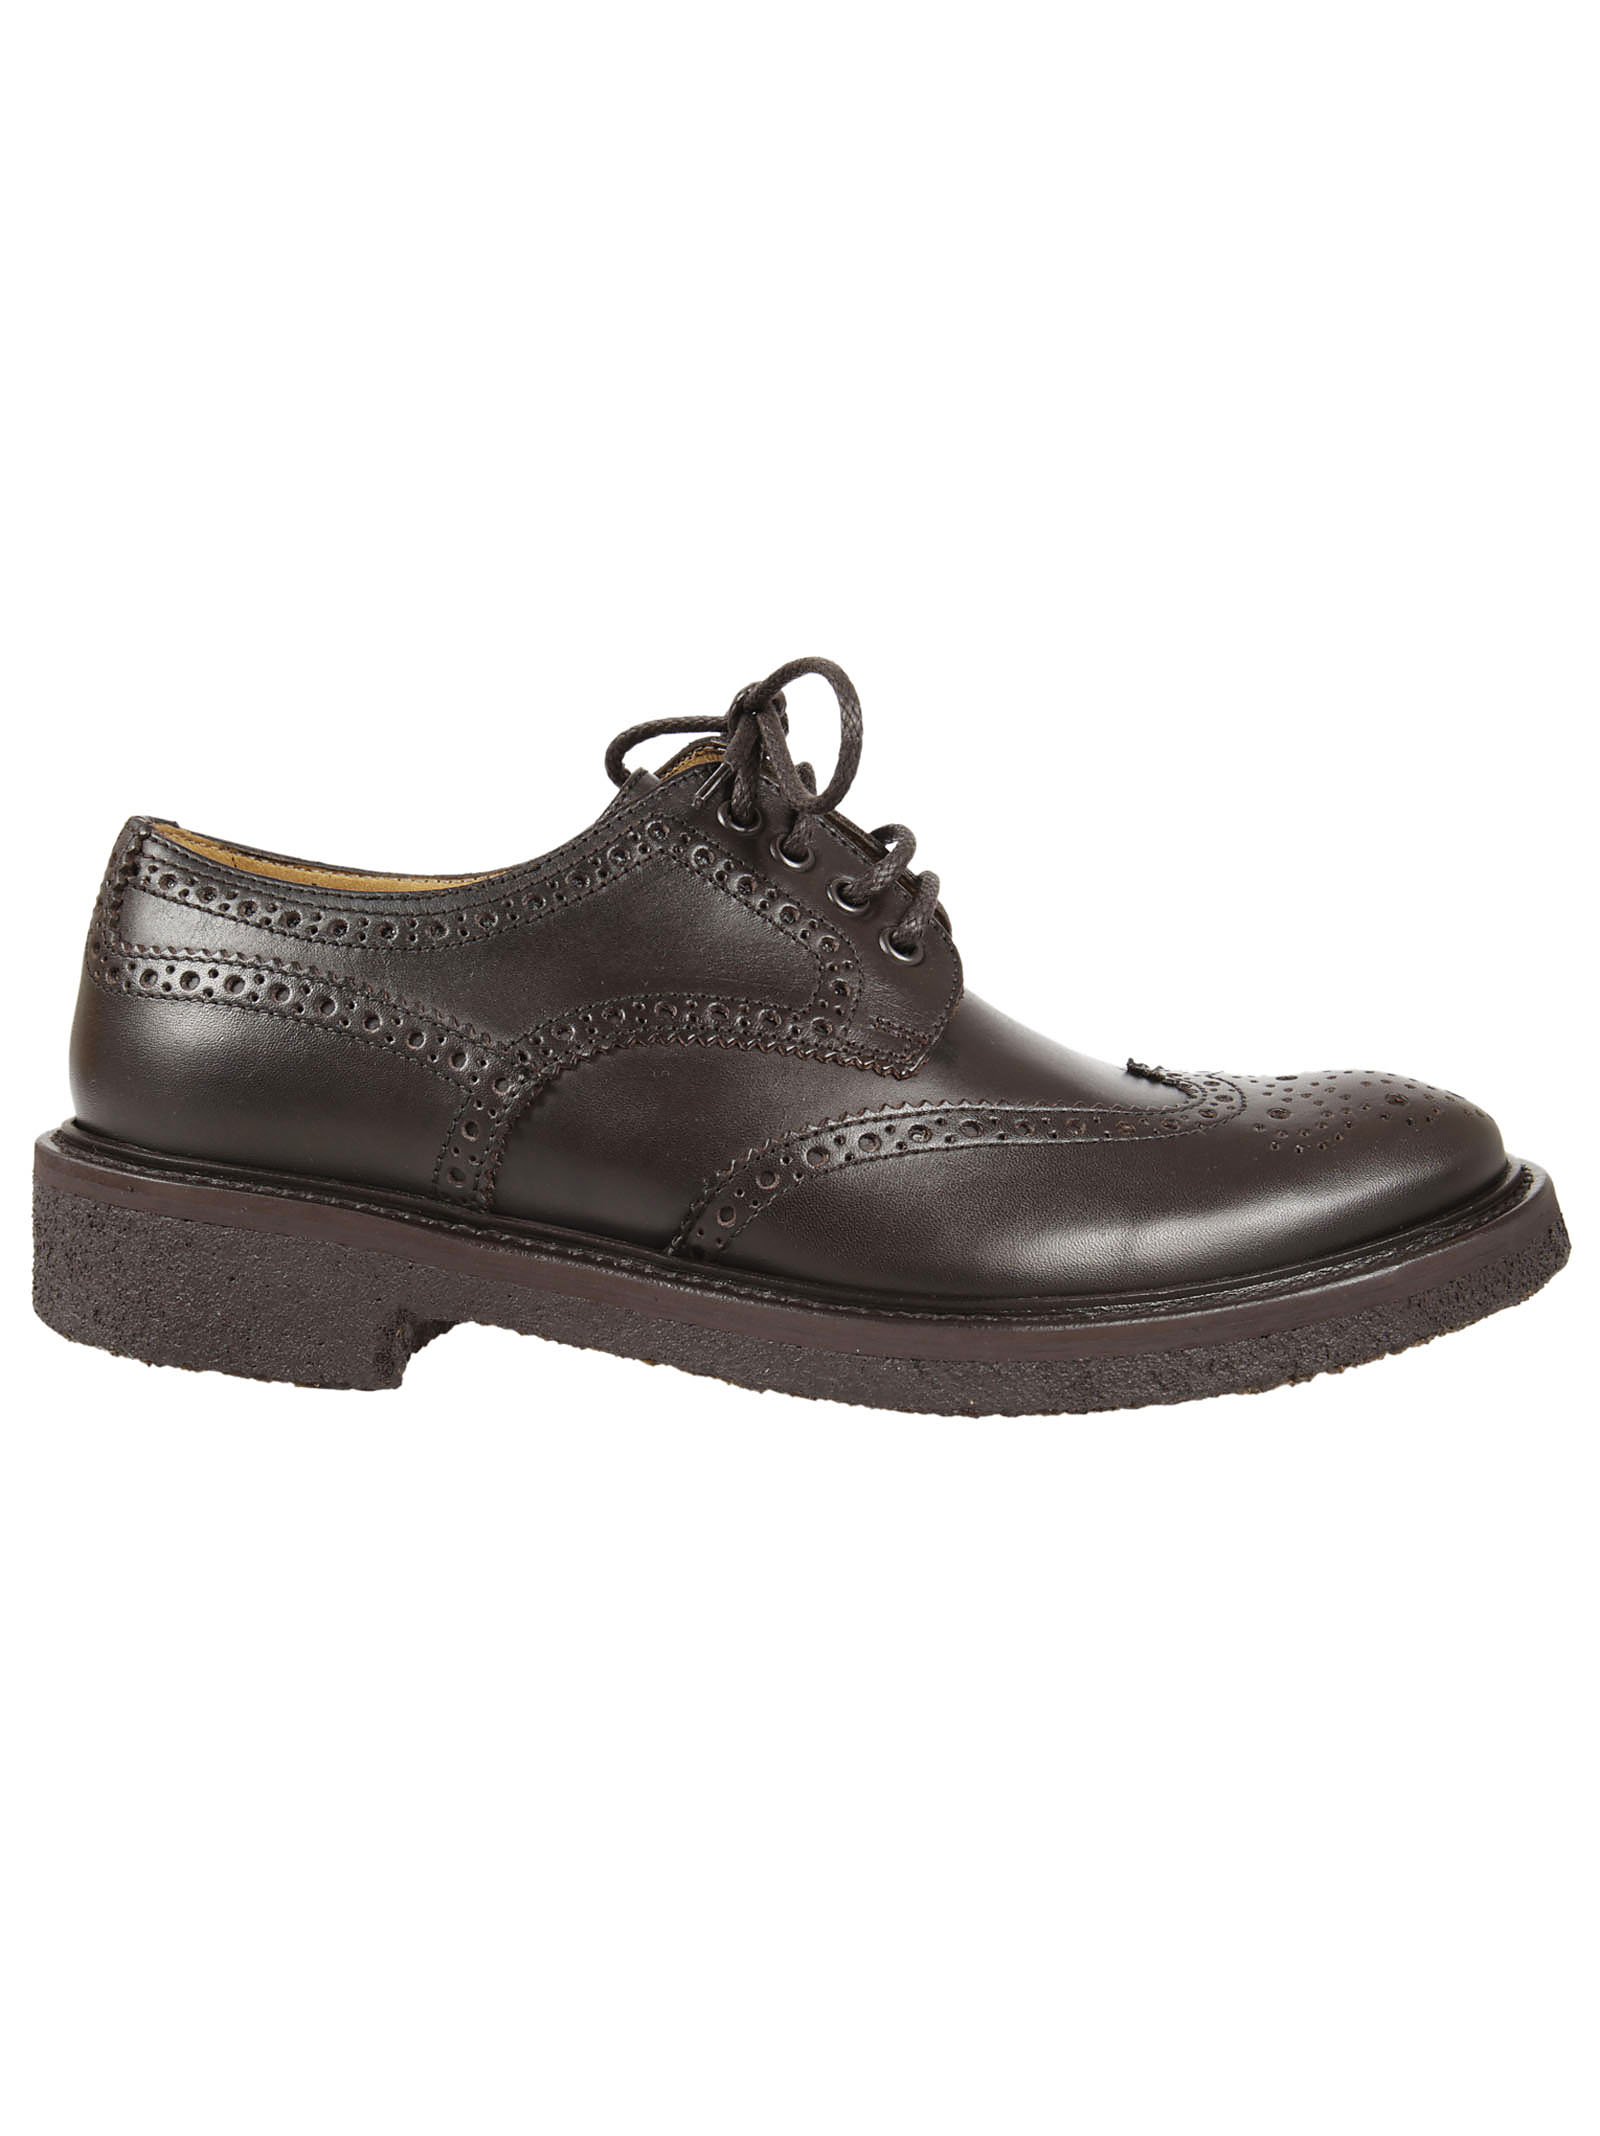 seeboys Seboy`s Perforated Derby Shoes